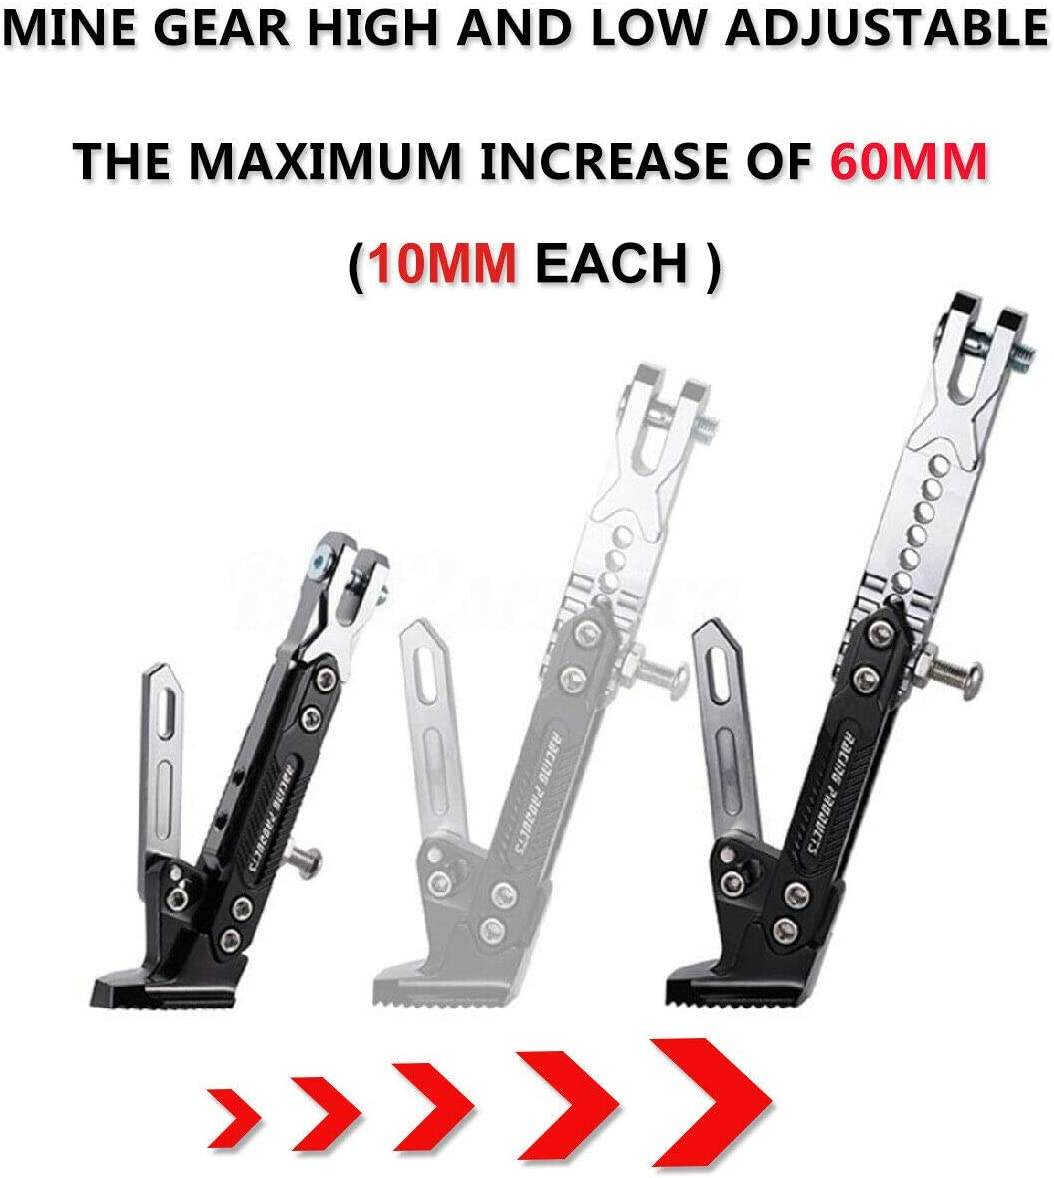 GG Boom CNC Aluminum Alloy Adjustable Kickstand Foot Side Stand for Motorcycle Universal